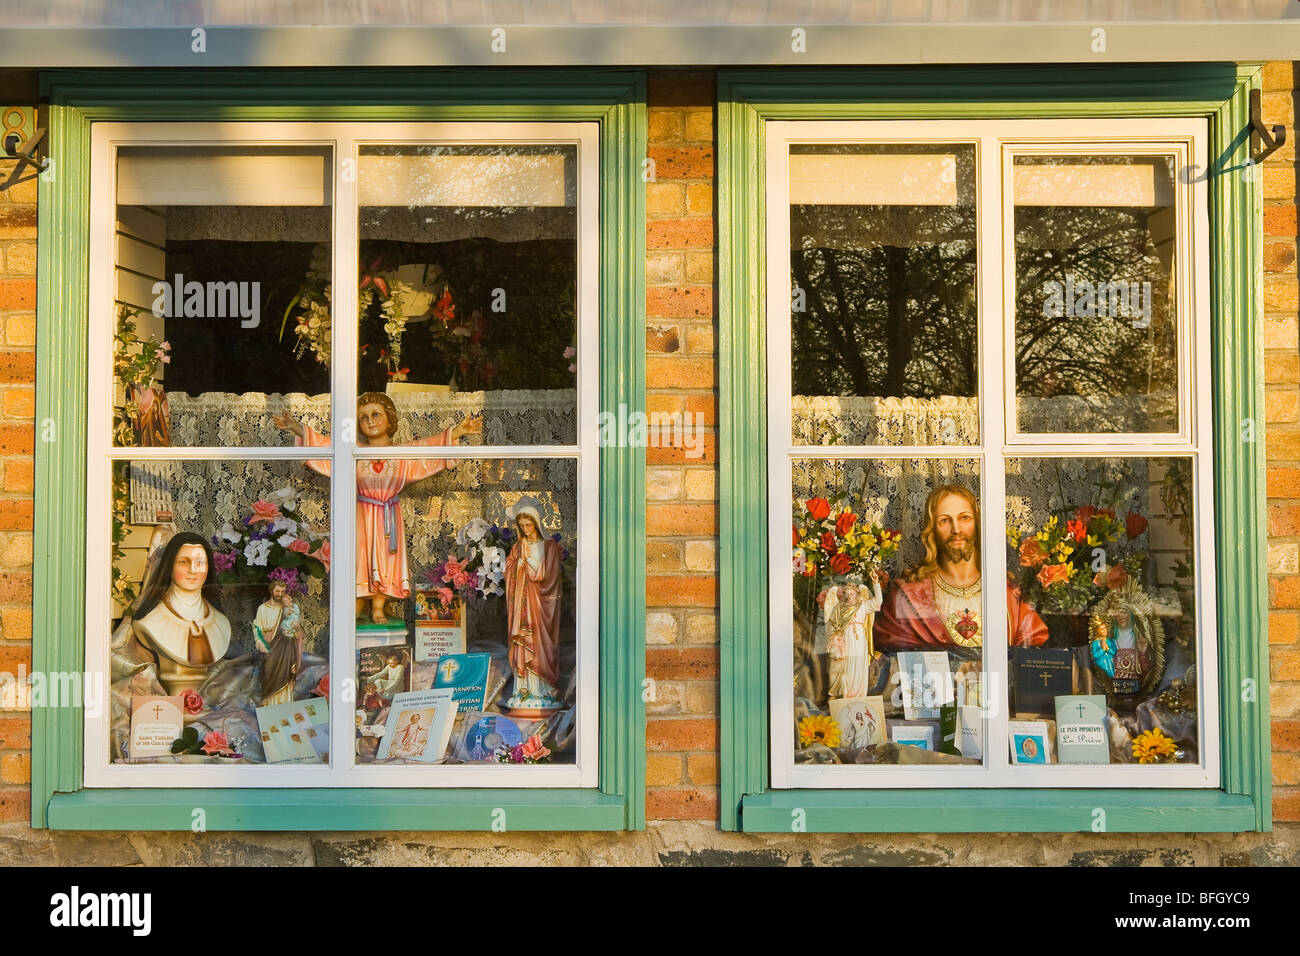 Window display of a shop that sells religious and devotional objects, Quebec City, Quebec, Canada - Stock Image